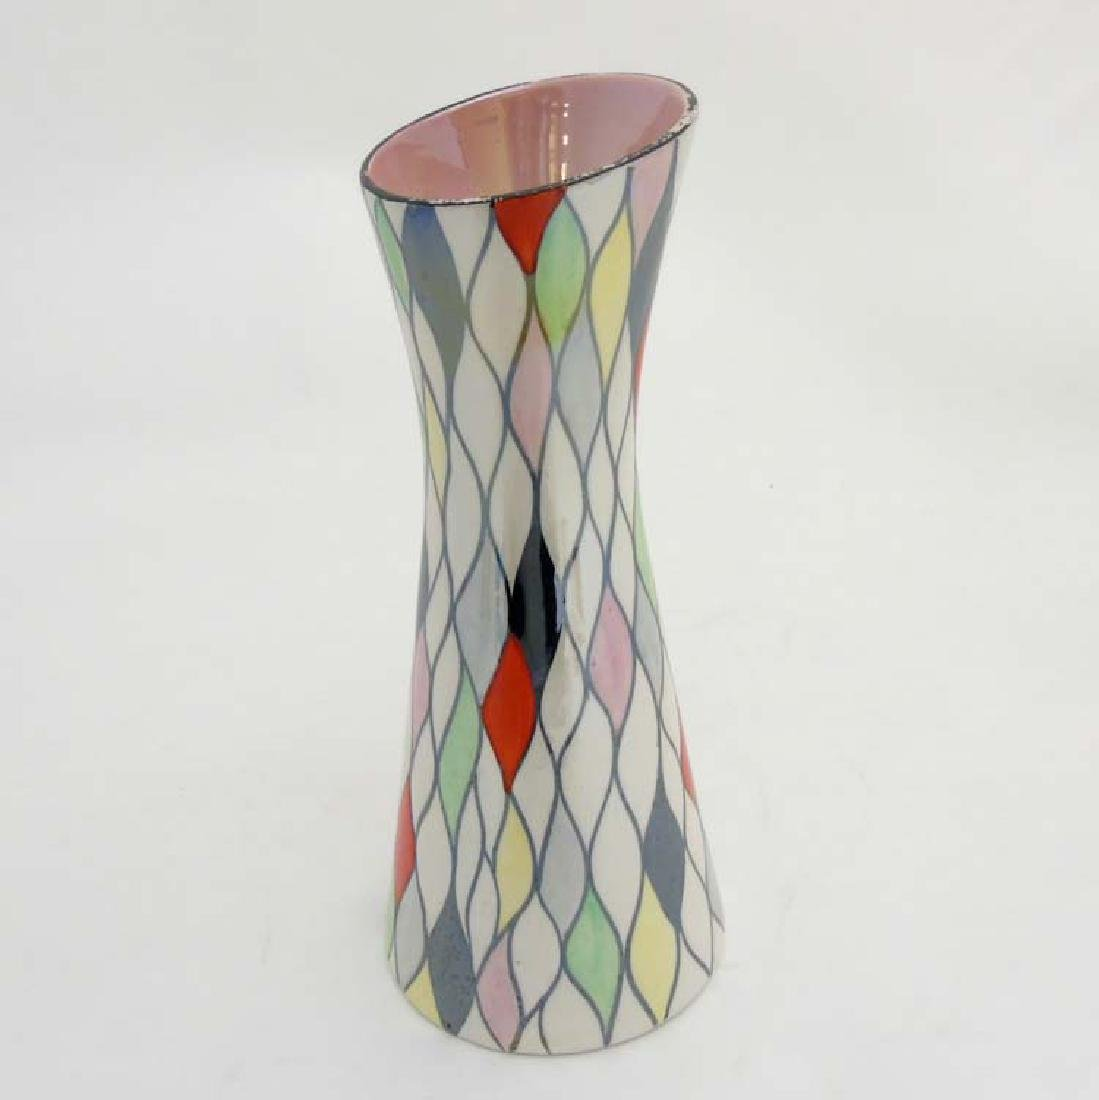 A Mid 20thC Retro Maling Traced Rose vase decorated in